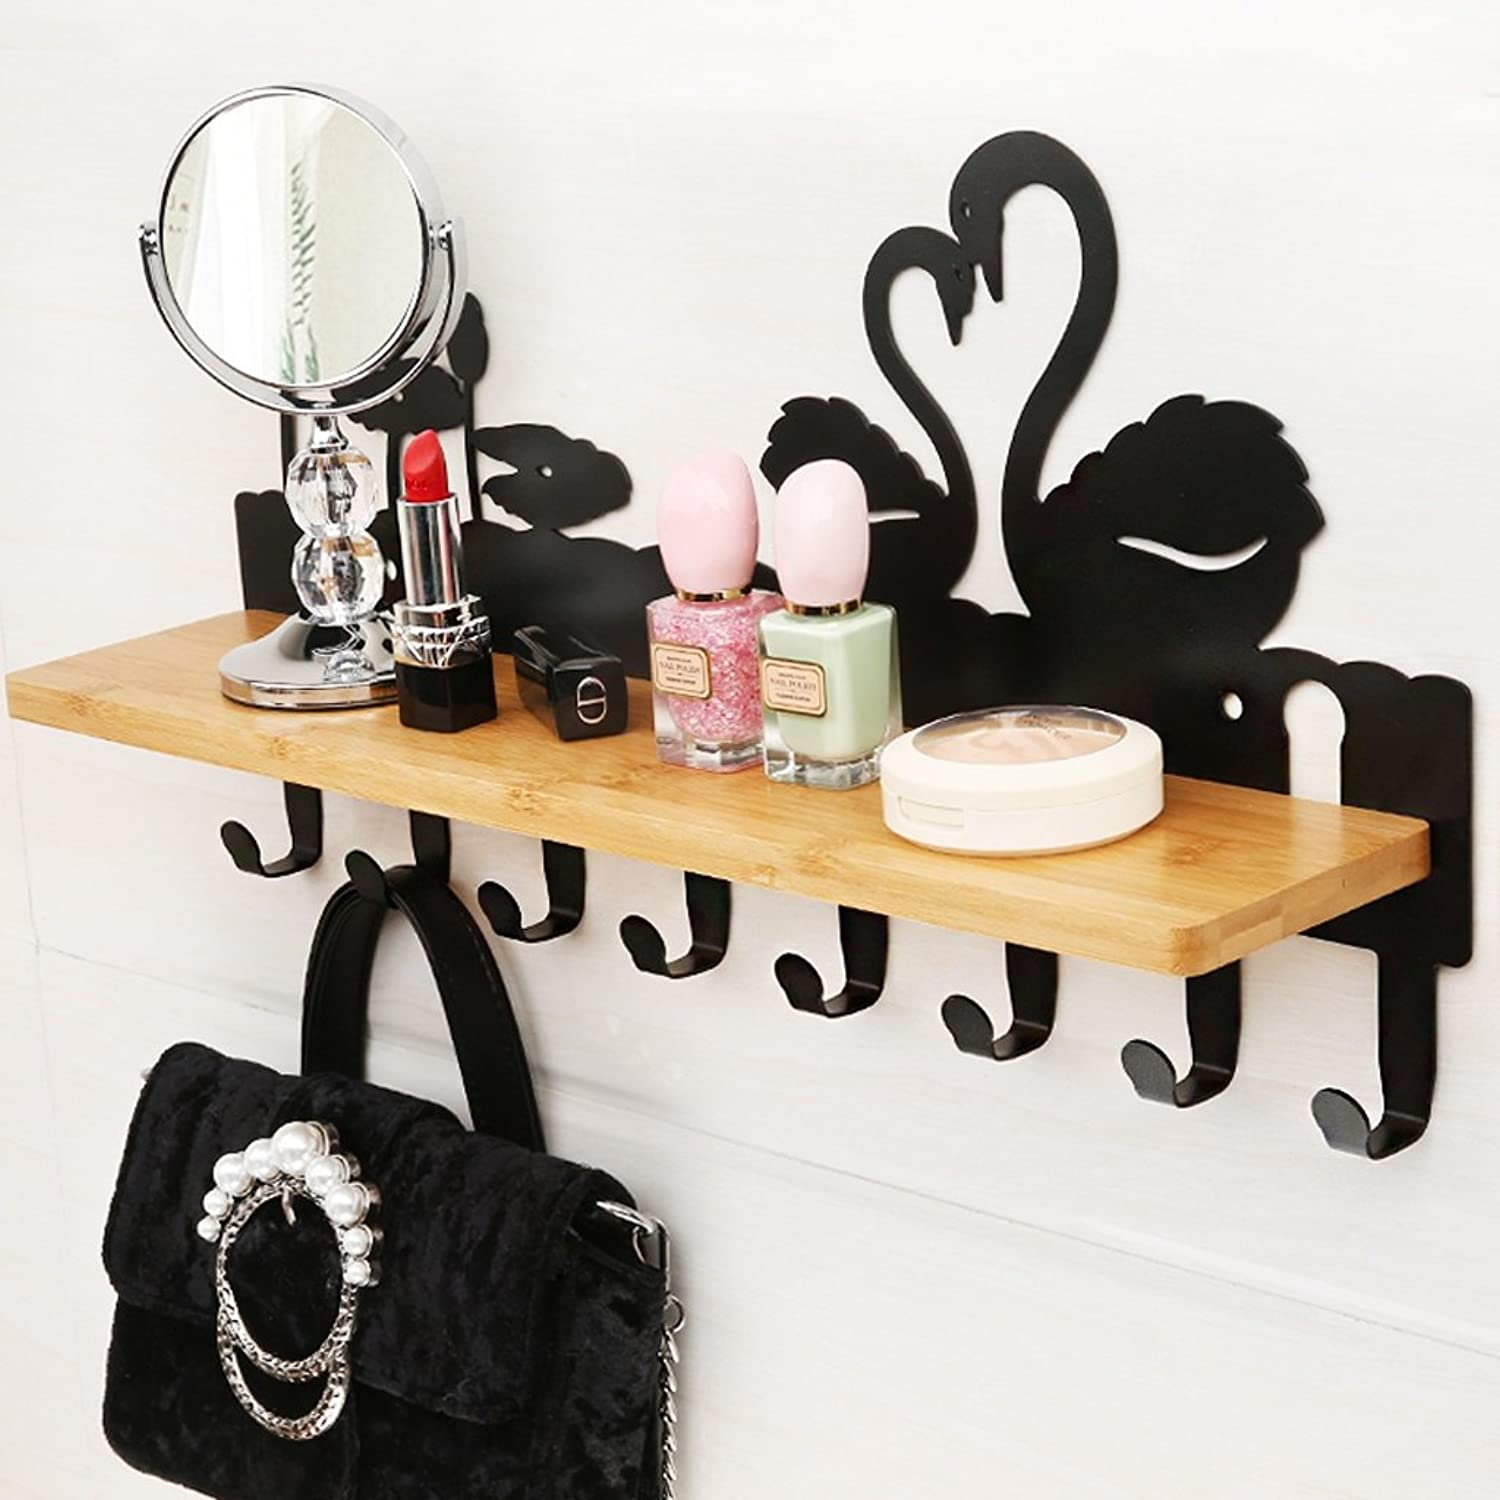 TIANTA- Wall-Mounted Coat Rack Free Punch Shelves Iron Porch Frame Personality Creative Linked (44  9.5  11.5CM) Home Furnishing